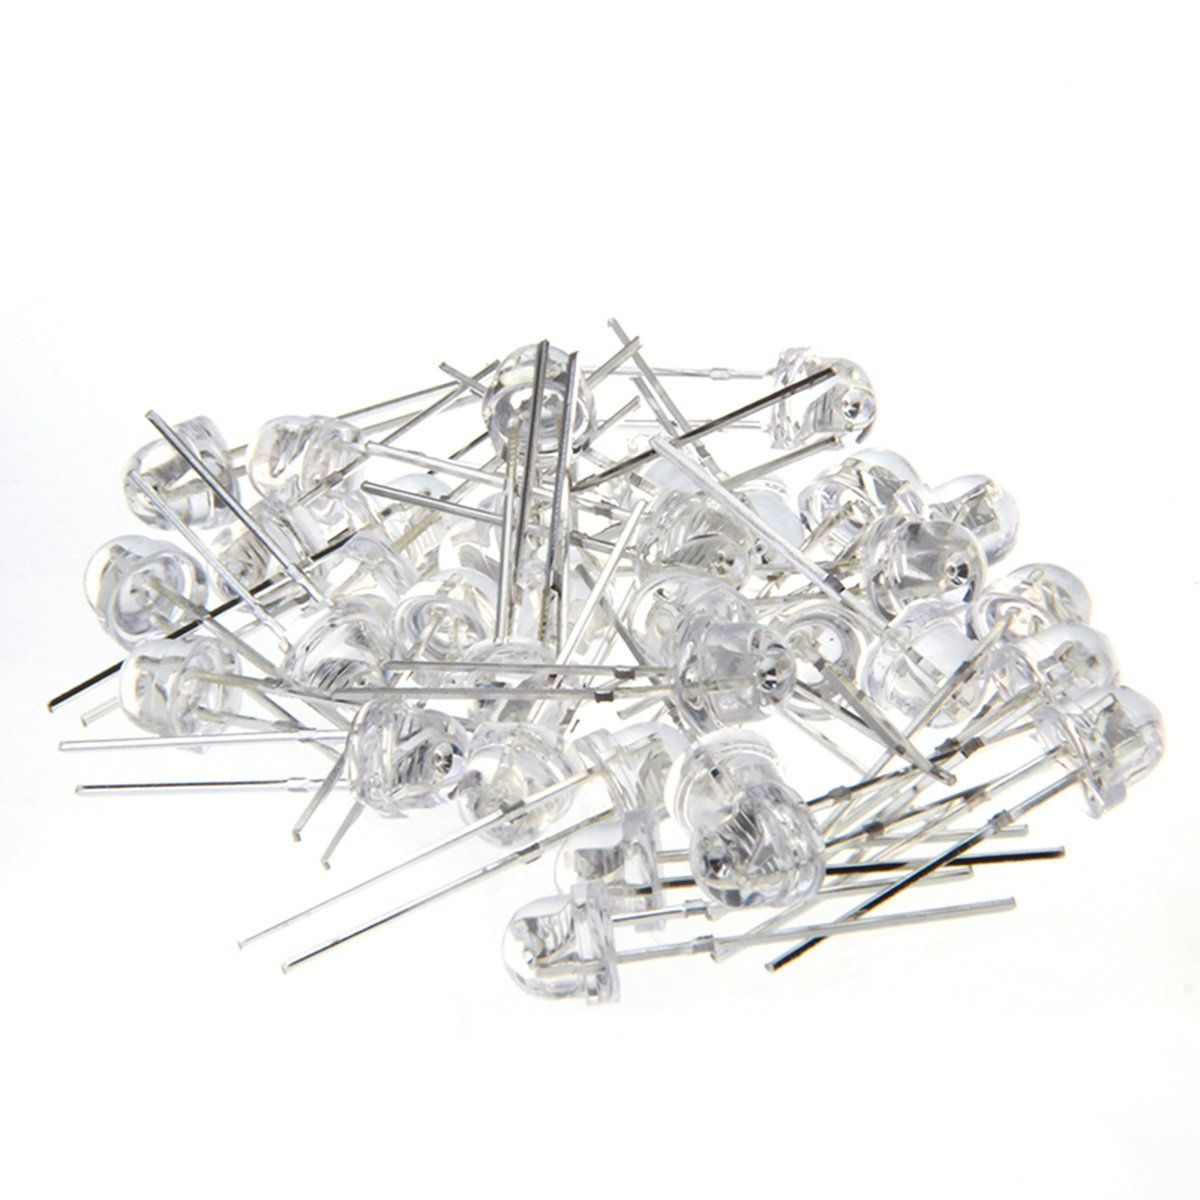 Chanzon 100 Pcs 5mm Yellow Led Diode Lights Clear Straw